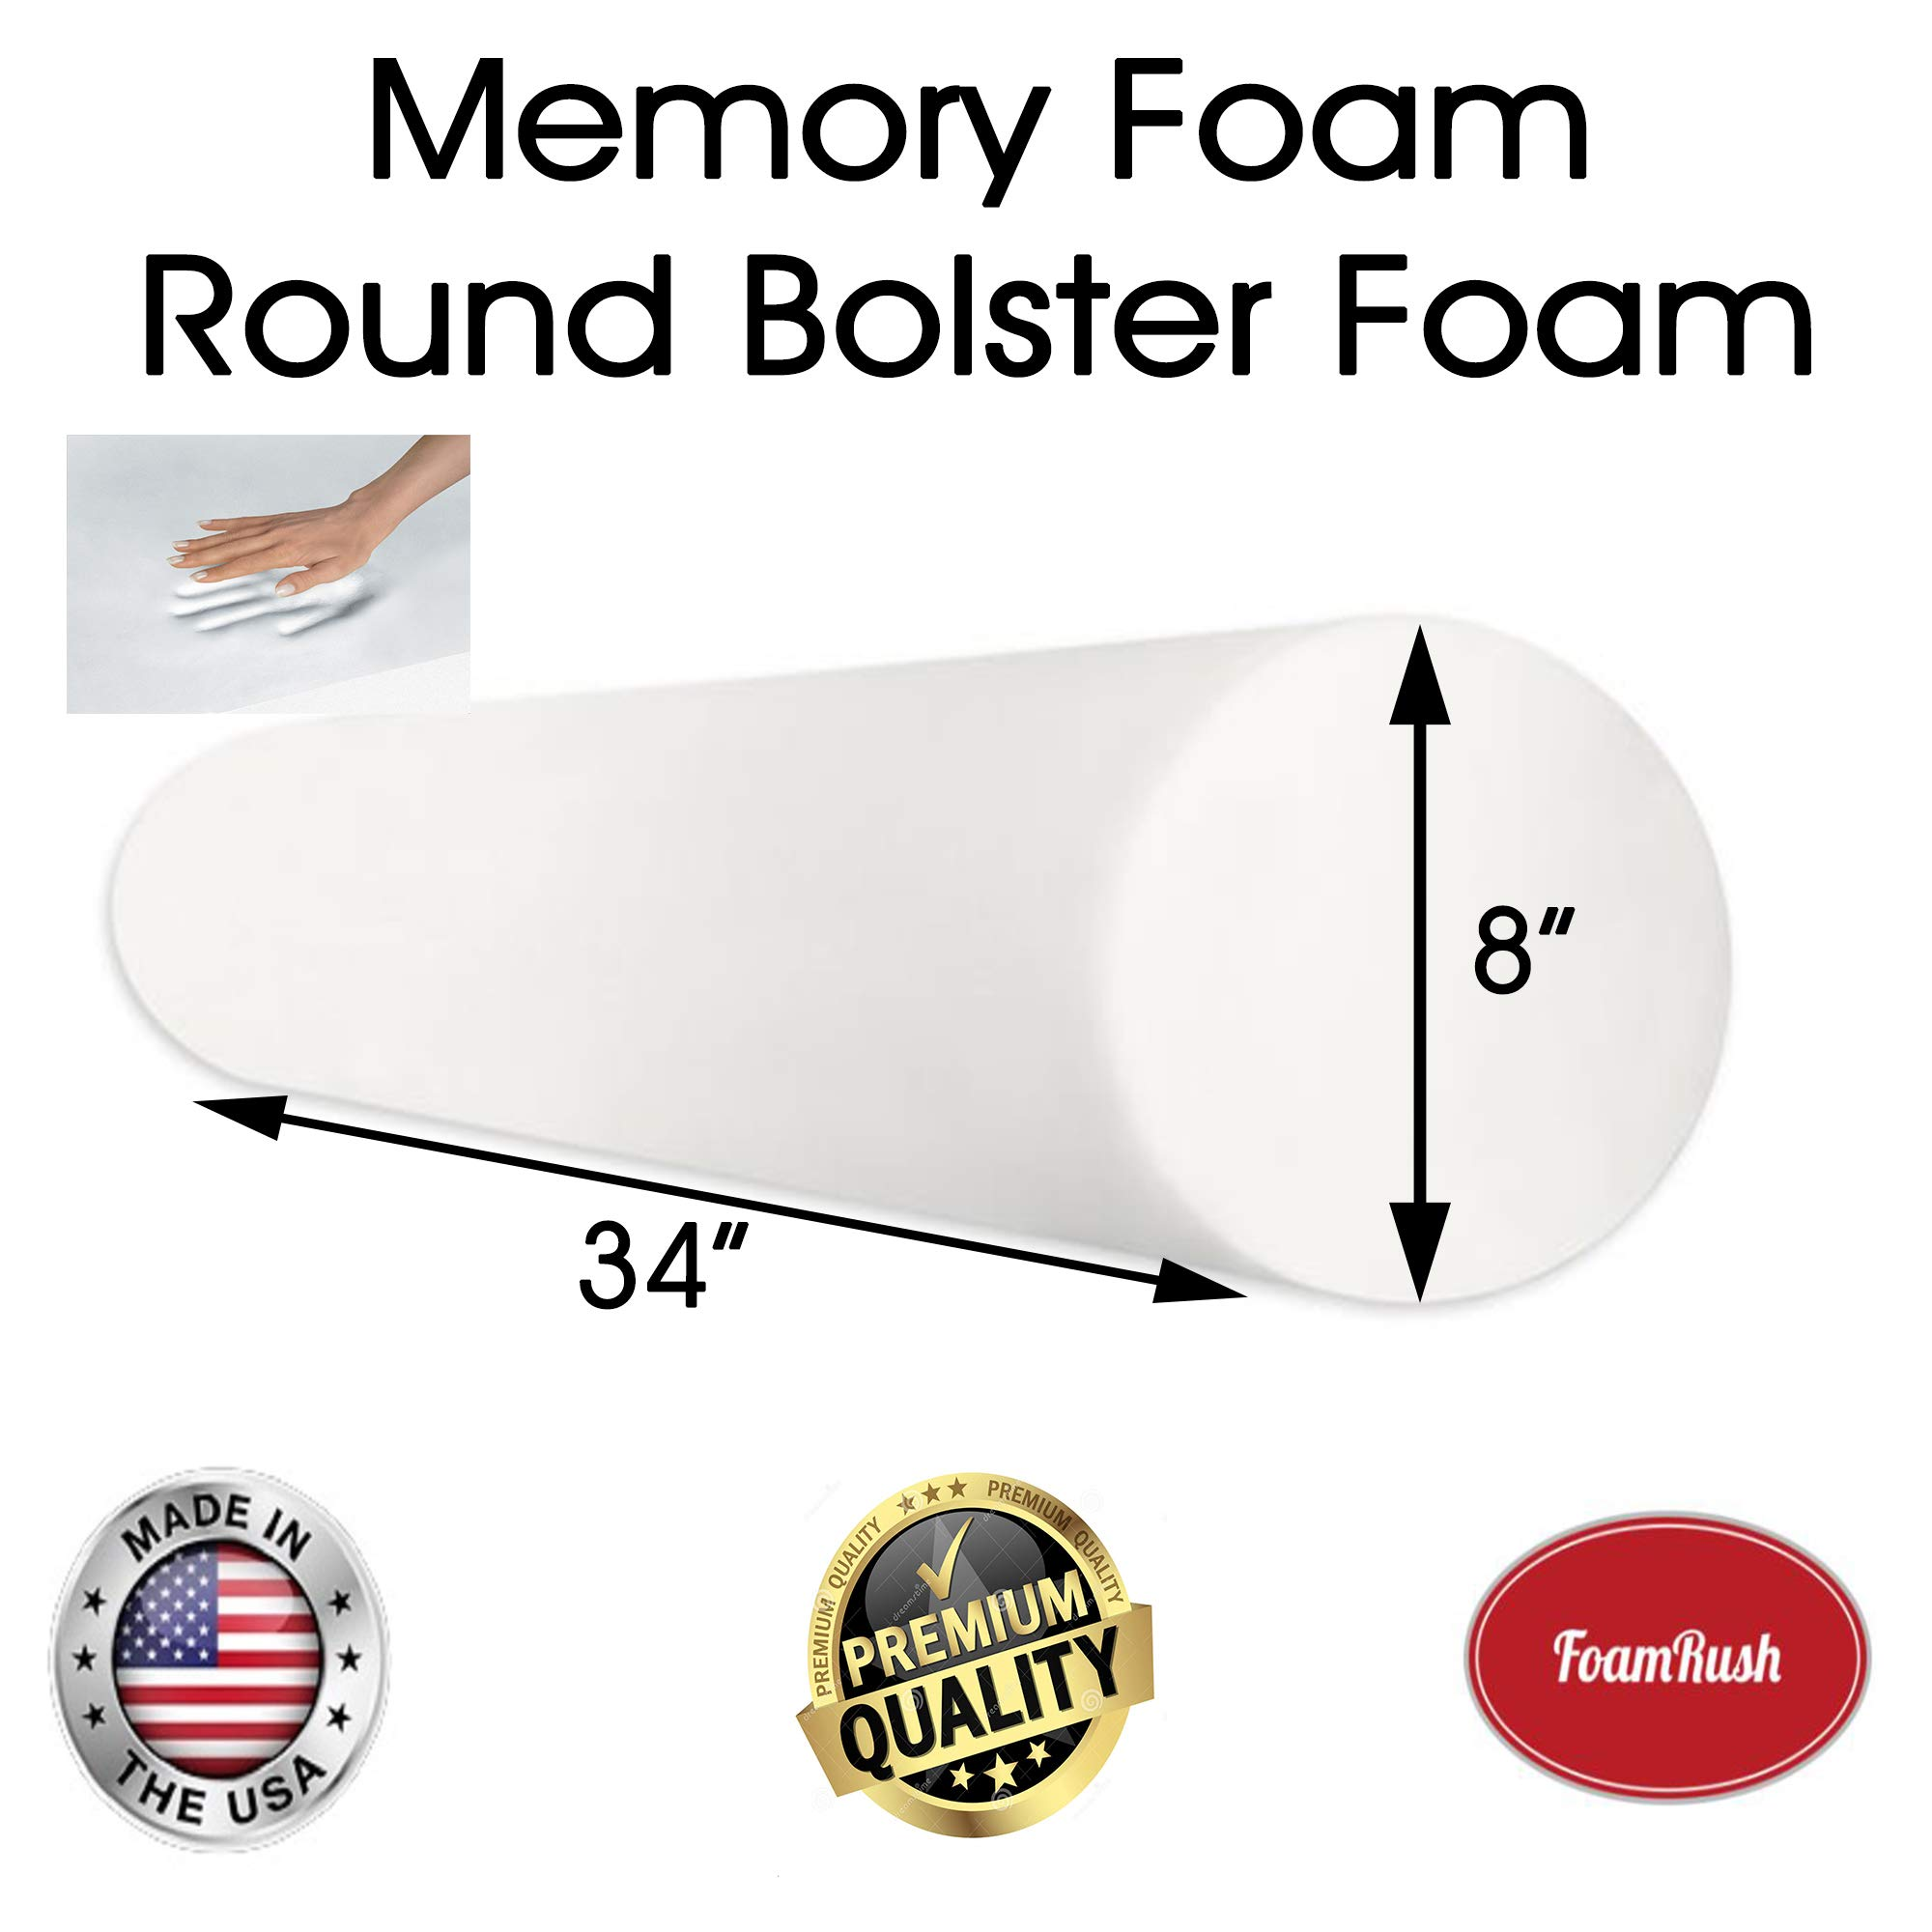 FoamRush 8'' Diameter x 34'' Long Premium Quality Round Bolster Memory Foam Roll Insert Replacement (Ideal for Home Accent Décor Positioning and General Fitness) Made in USA